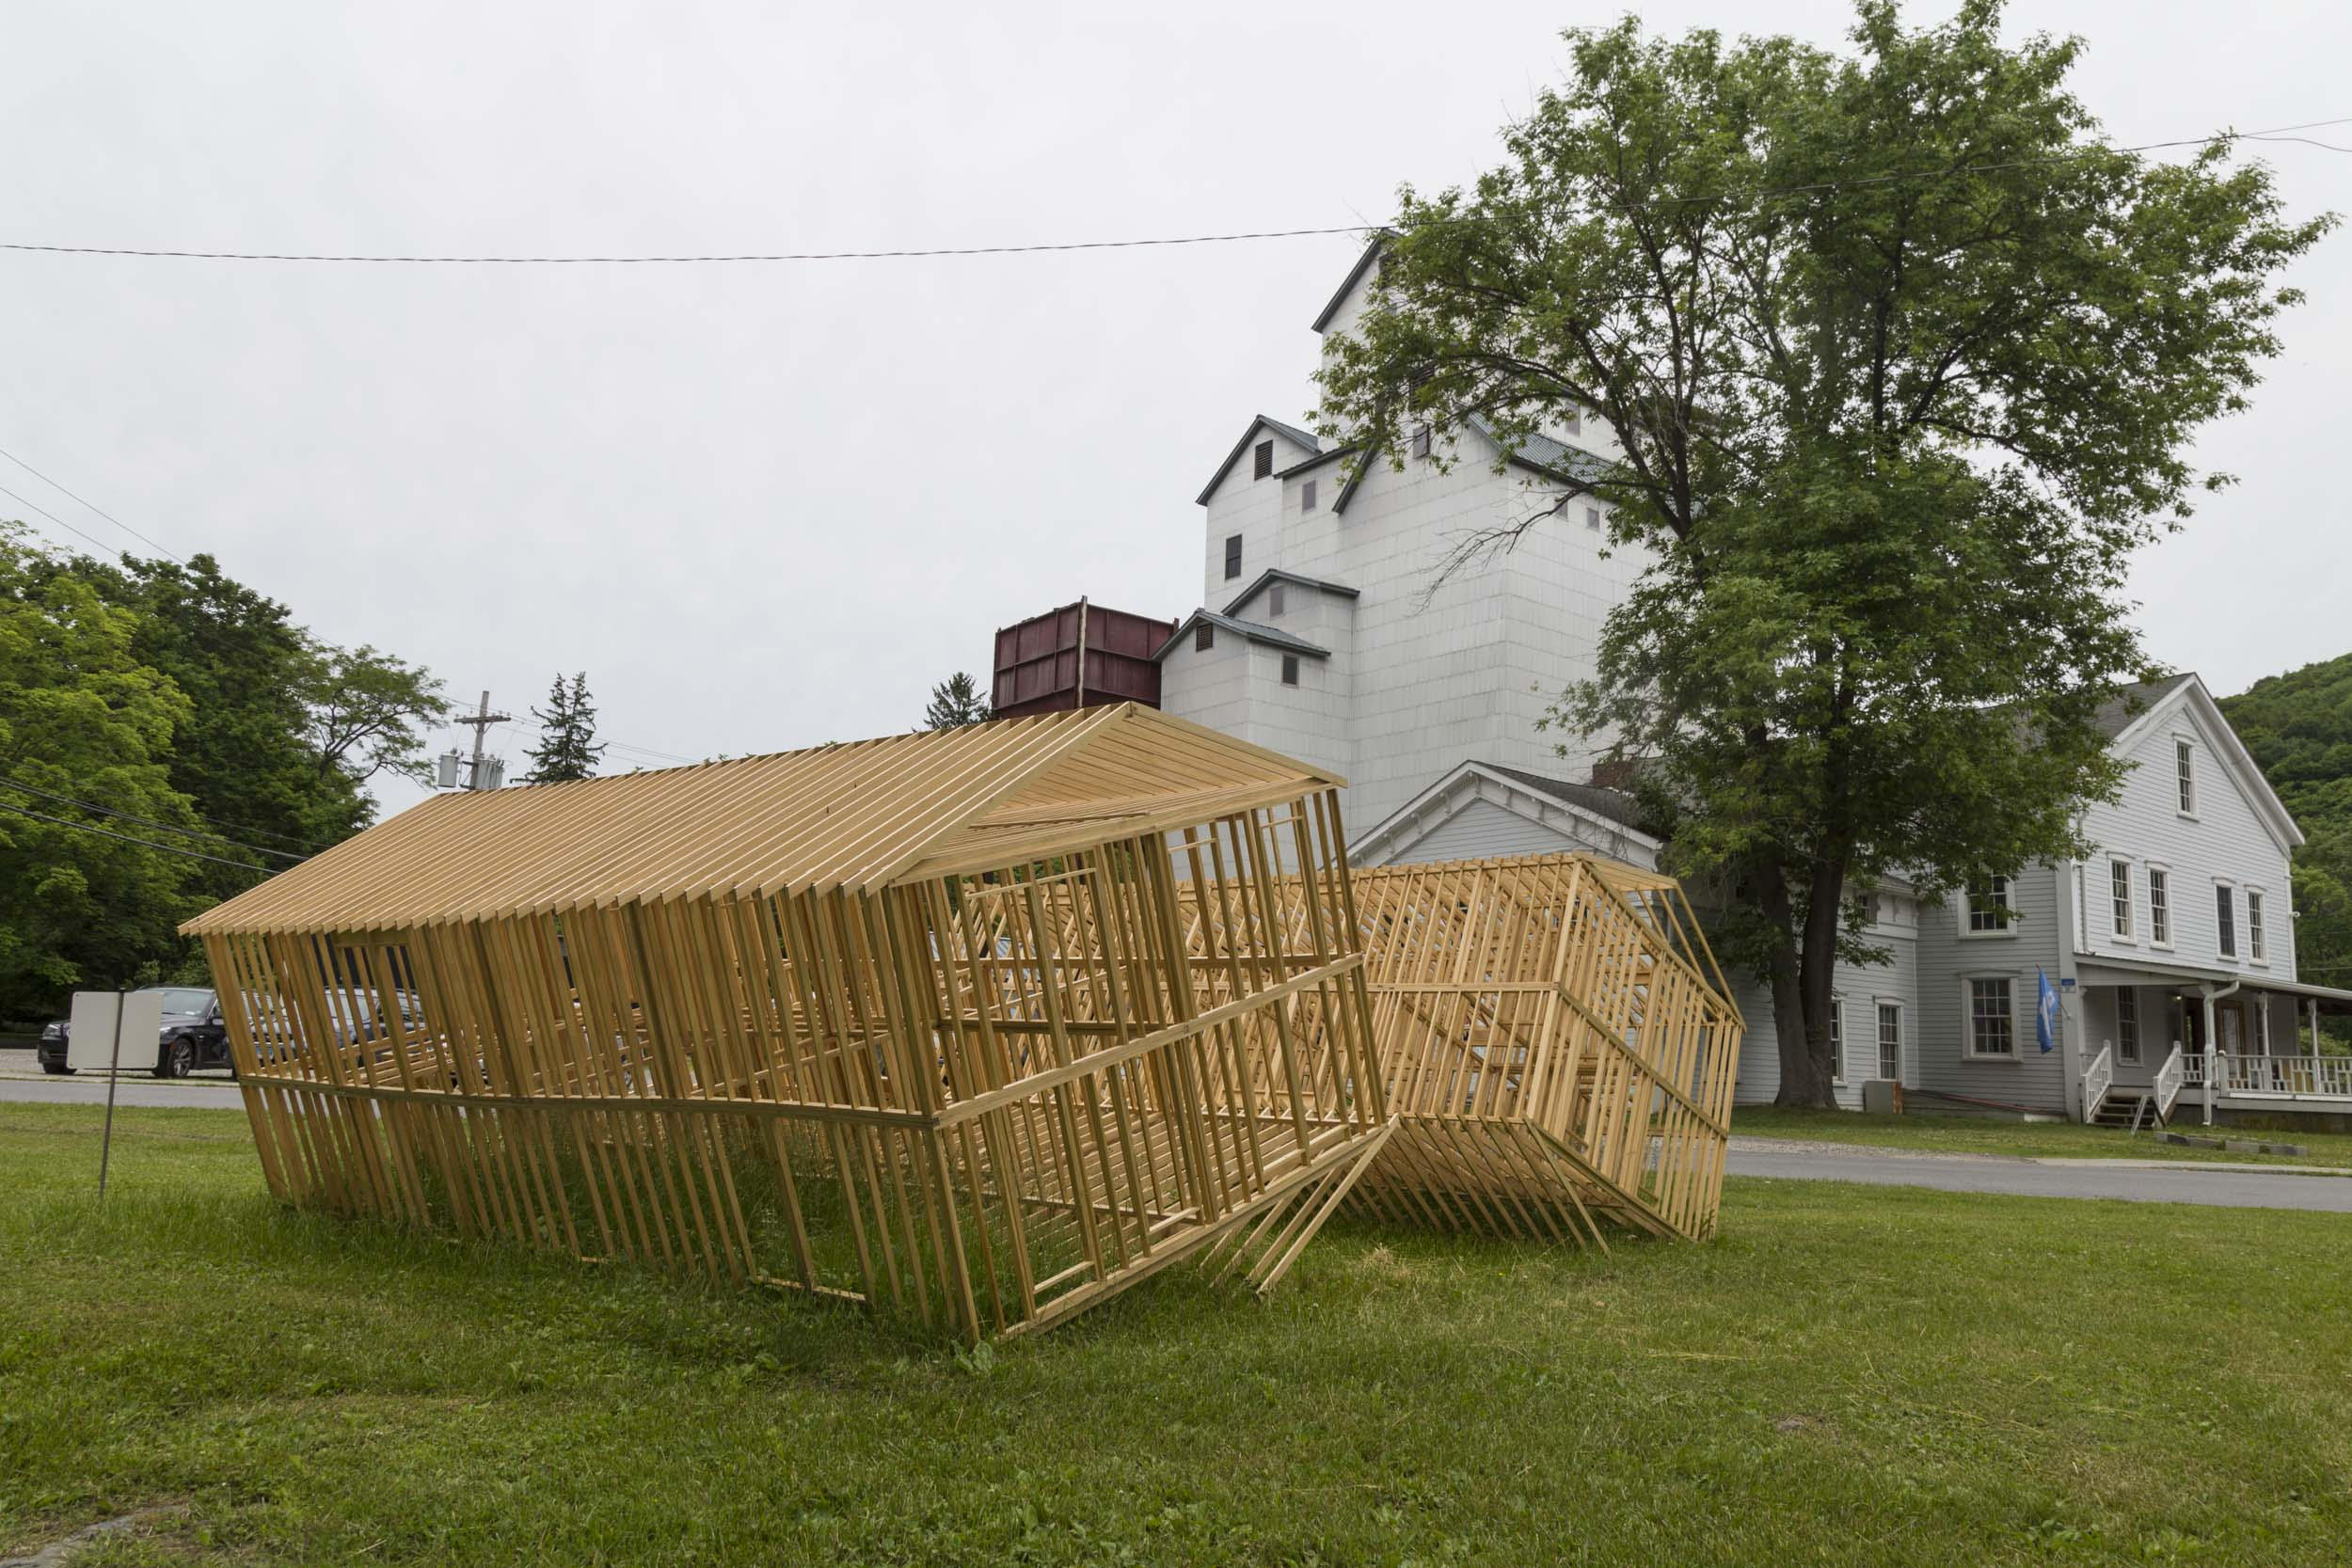 wassaic-project-exhibition-change-of-state-2018-06-10-12-27-12.jpg